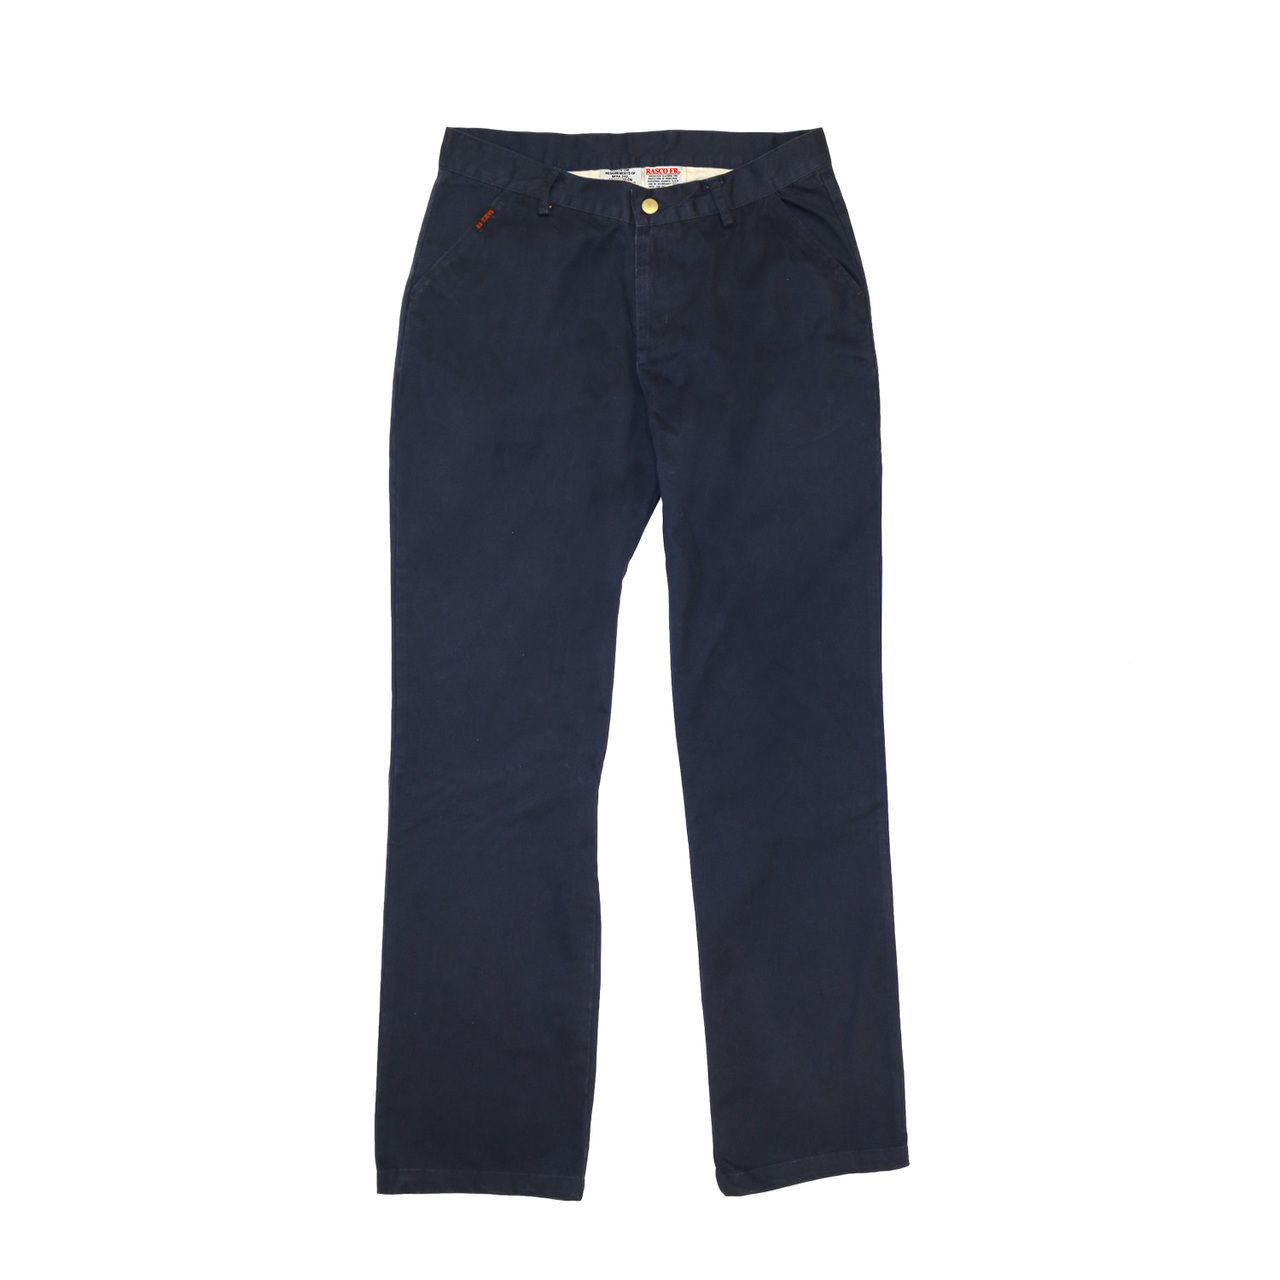 14 Rasco Fr Pants And Jeans Ideas Pants Father Father Clothes